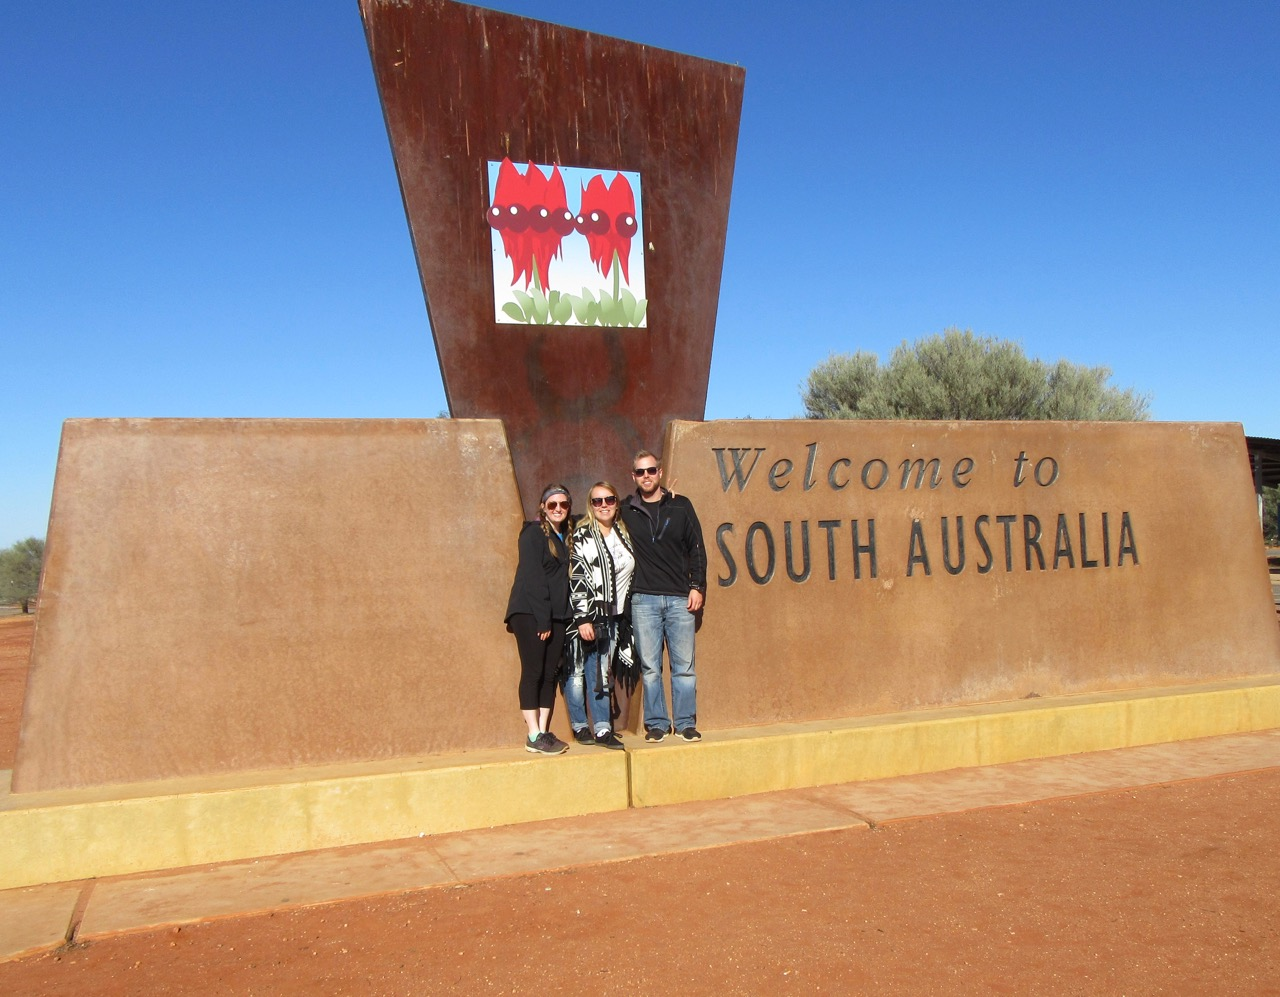 We were actually leaving South Australia but hey it was a good photo opp!